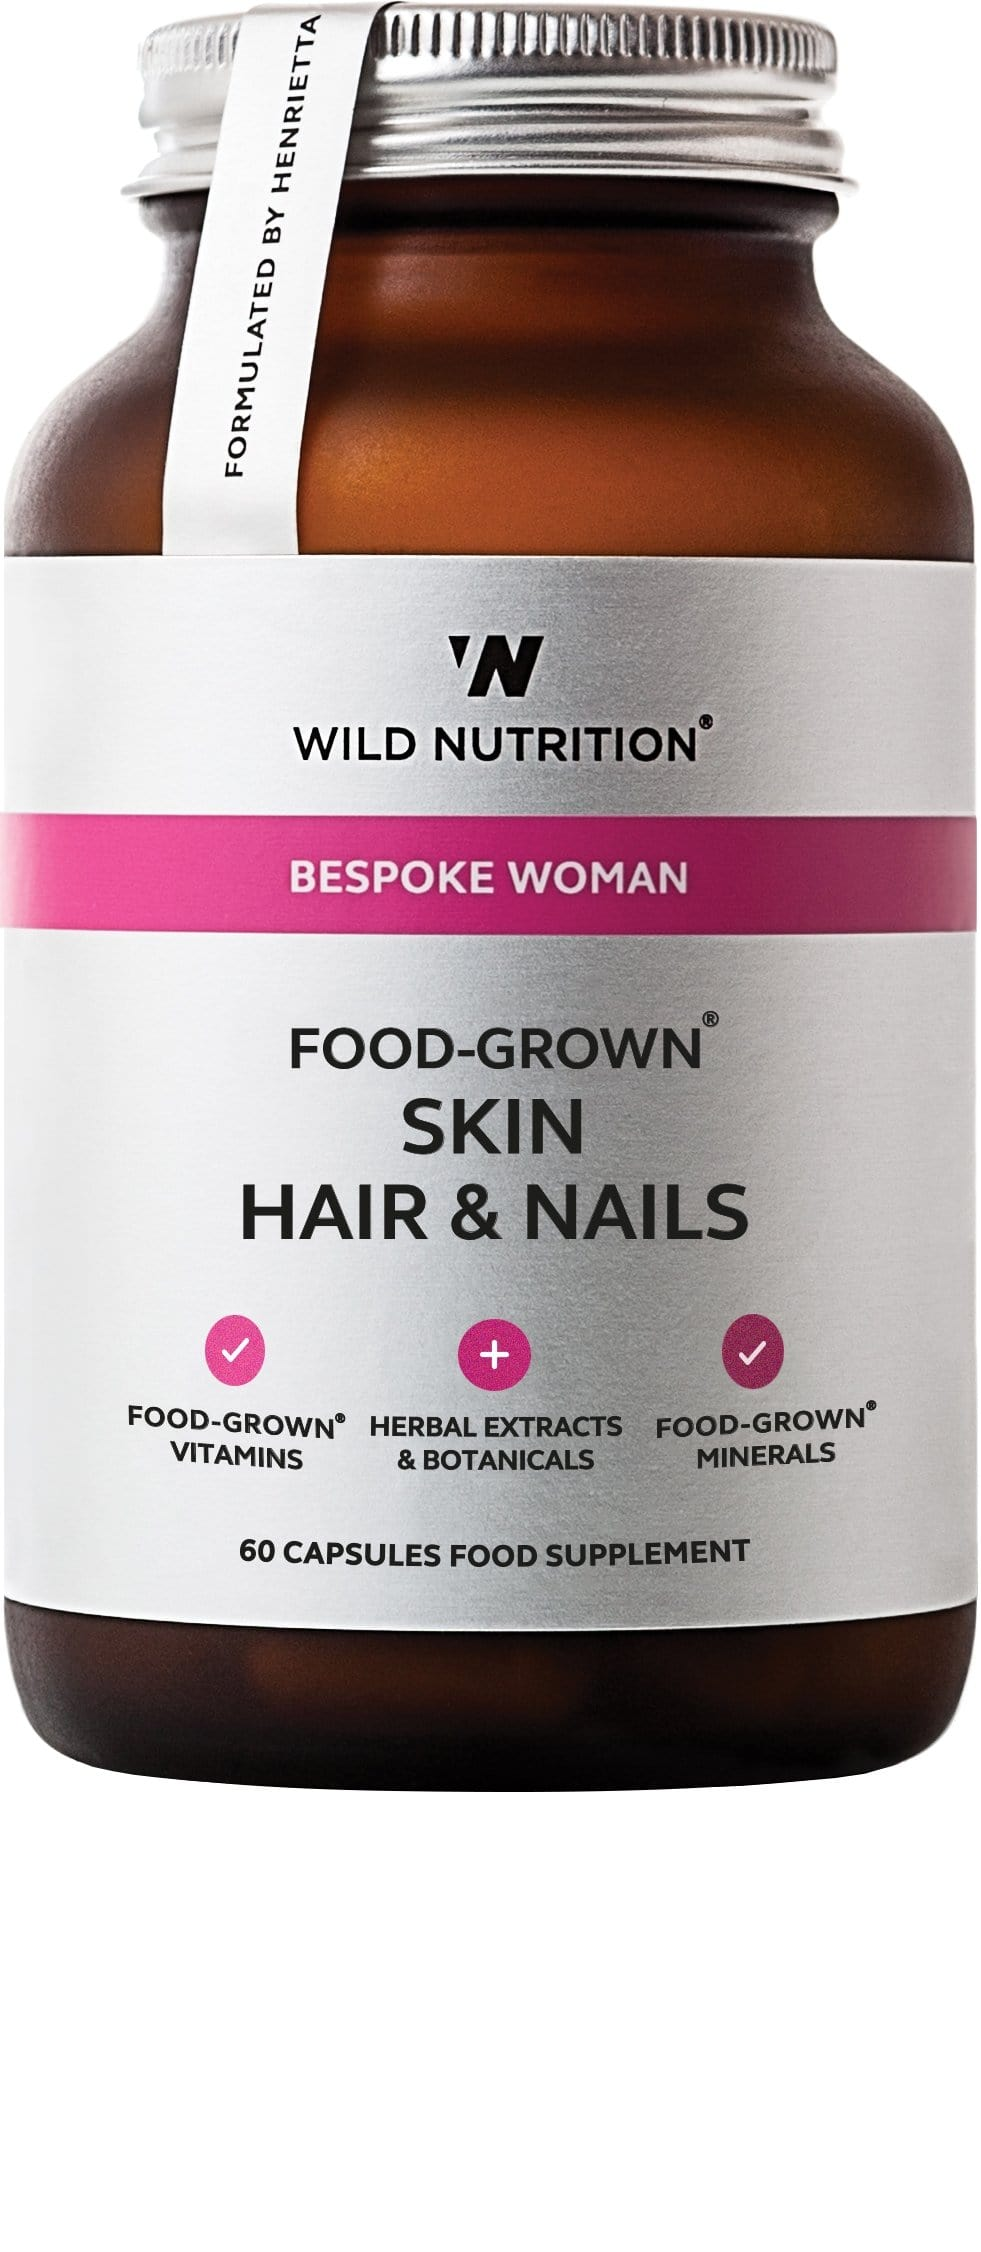 Wild Nutrition Ltd Food-Grown Skin Hair & Nails, 60 VCapsules image